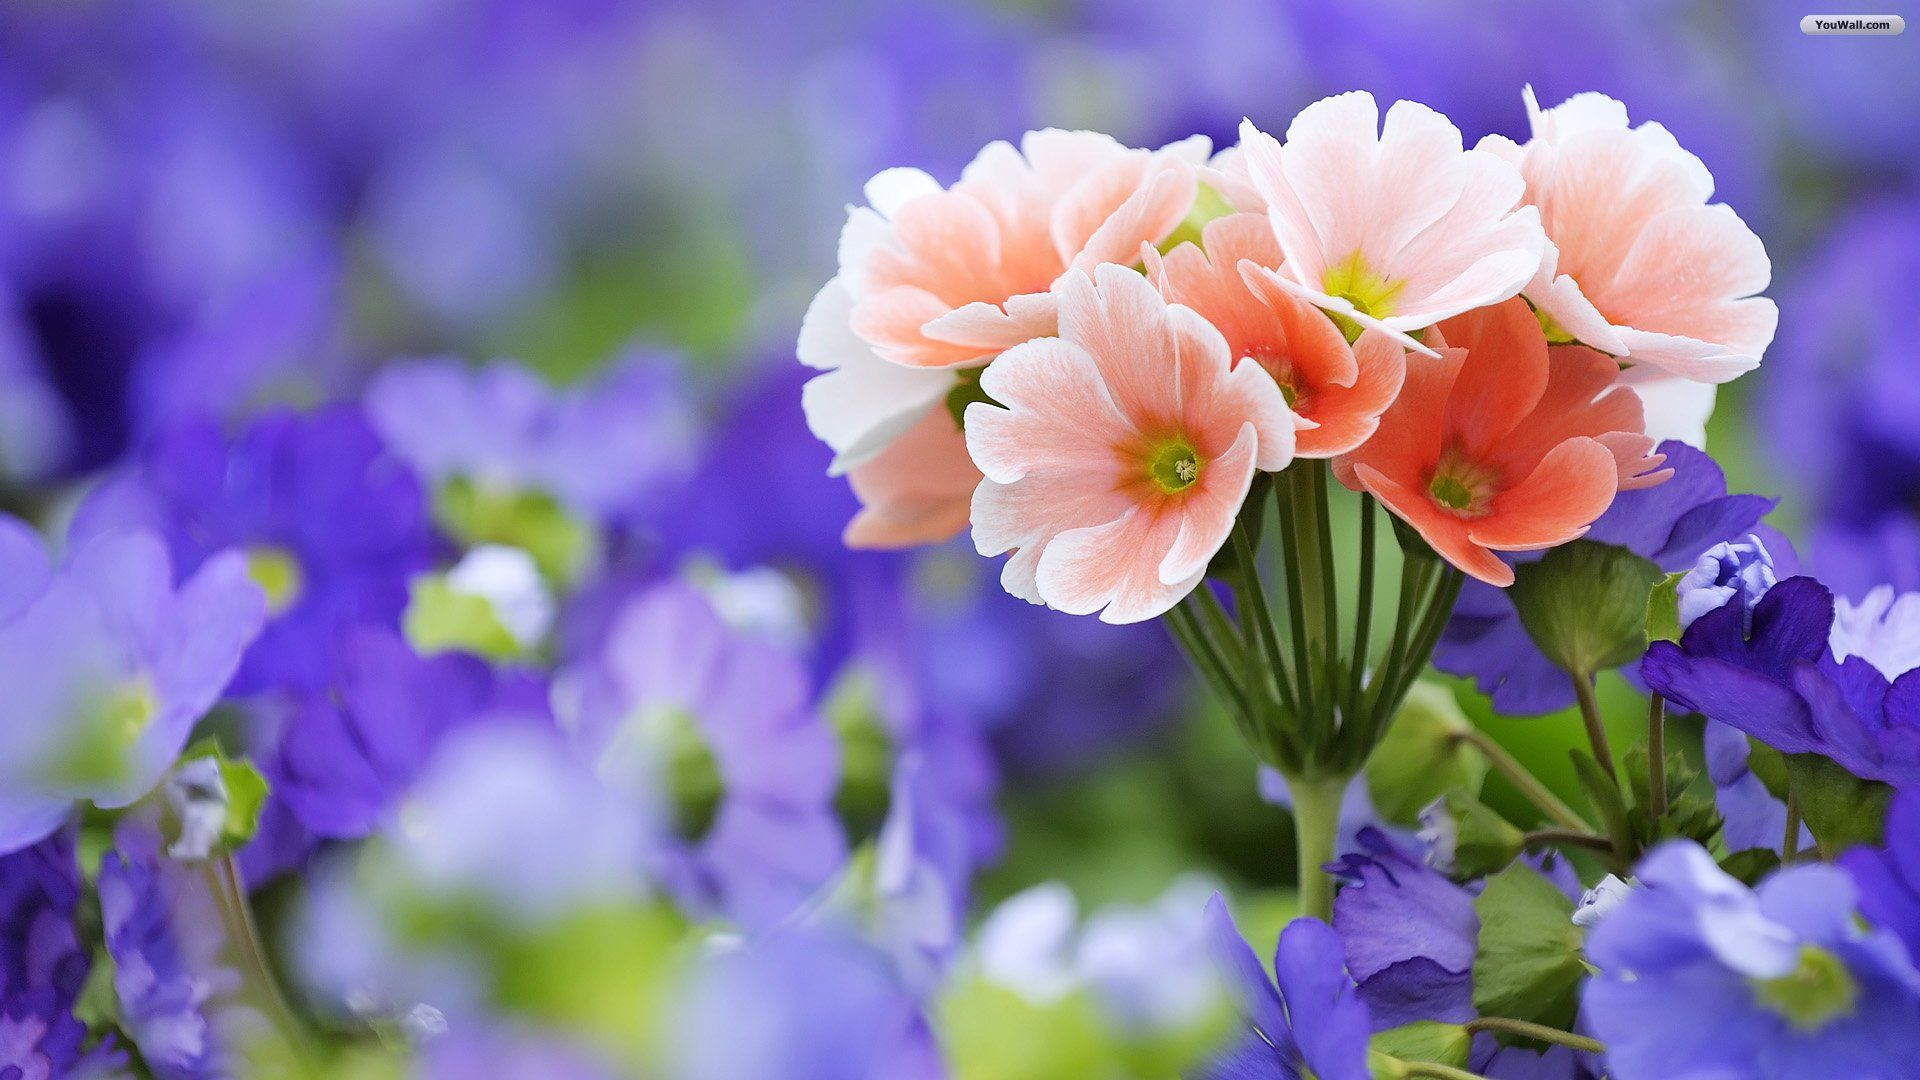 Of Flowers Hd In High Resolution For Free Get Wallpapers Of